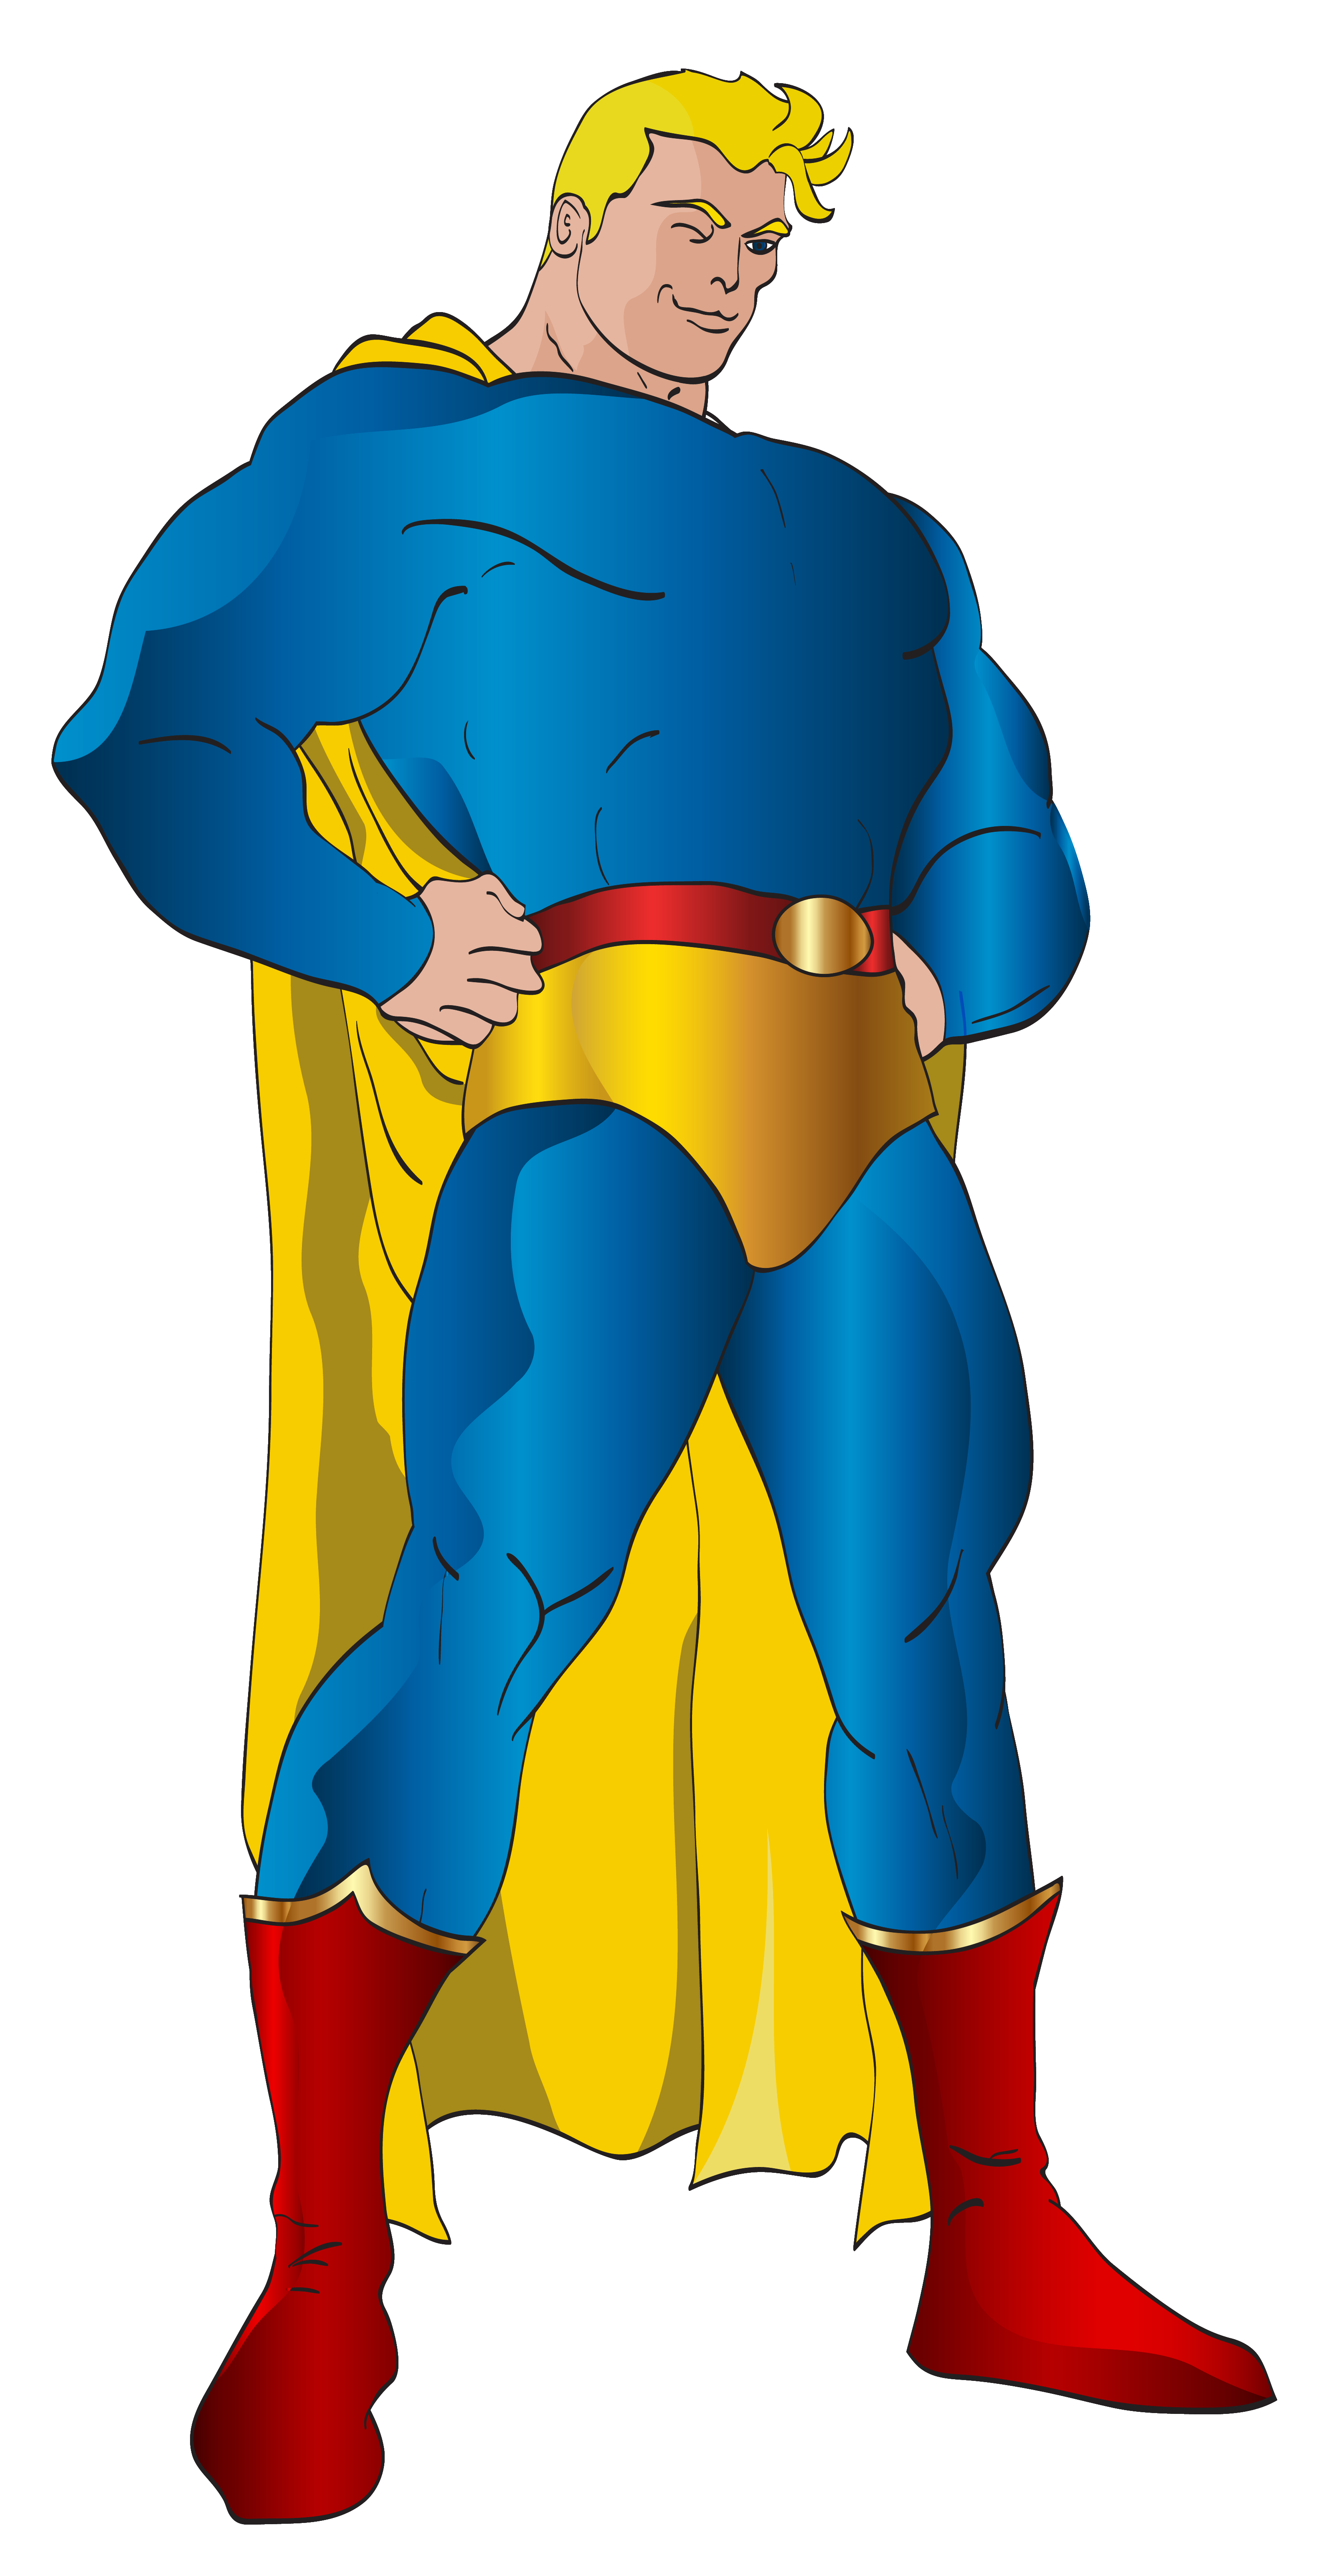 Free superhero png. Clip art image gallery